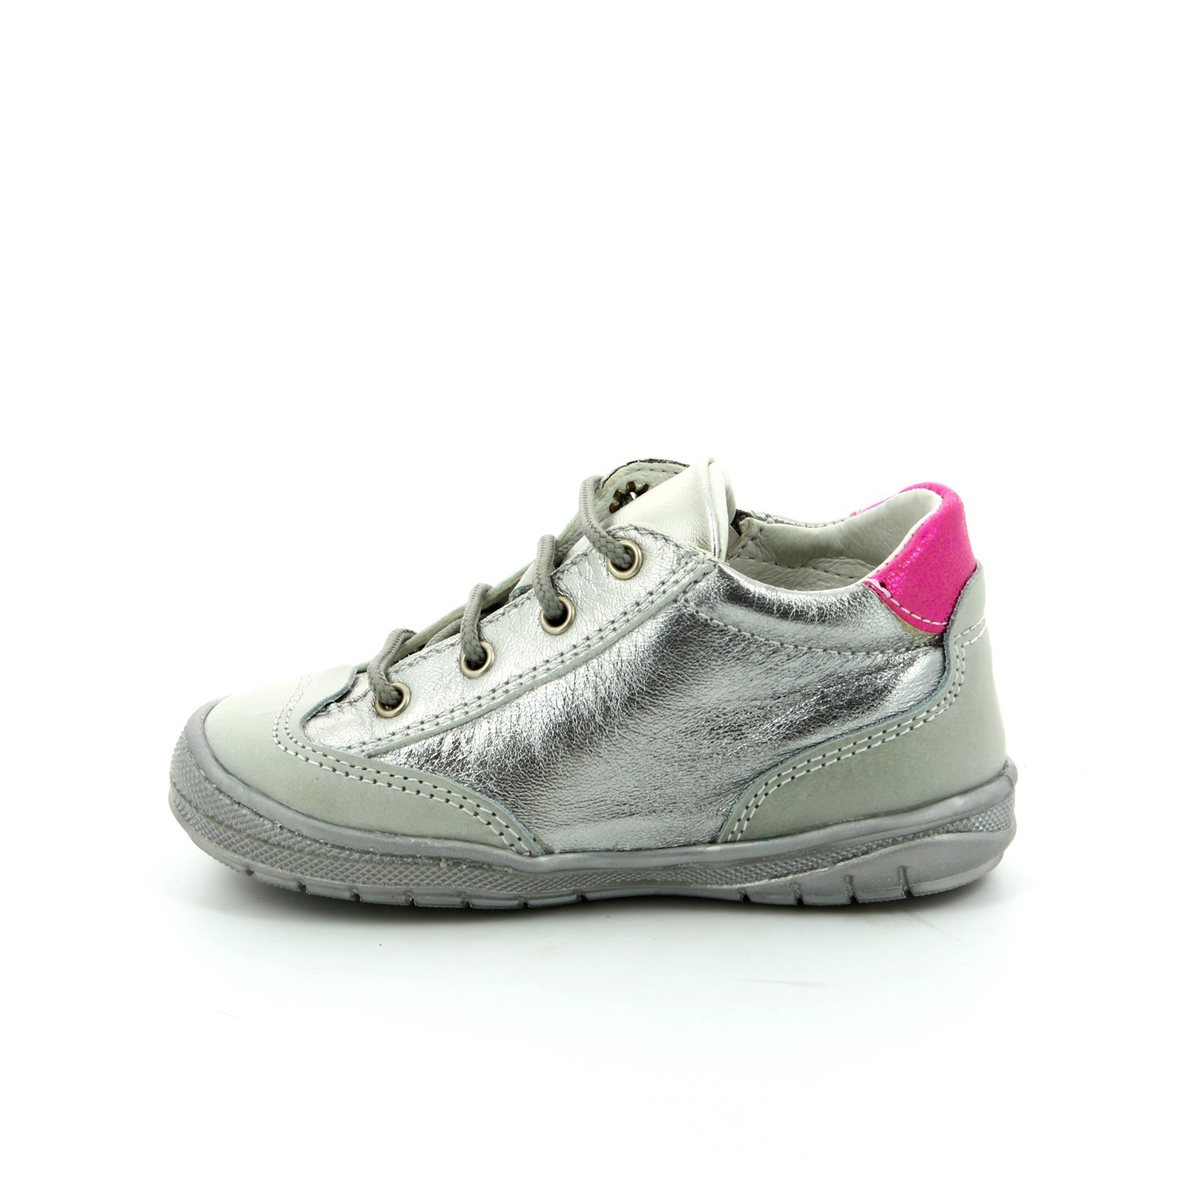 Primigi Baby Nordic 80 Pink multi first shoes